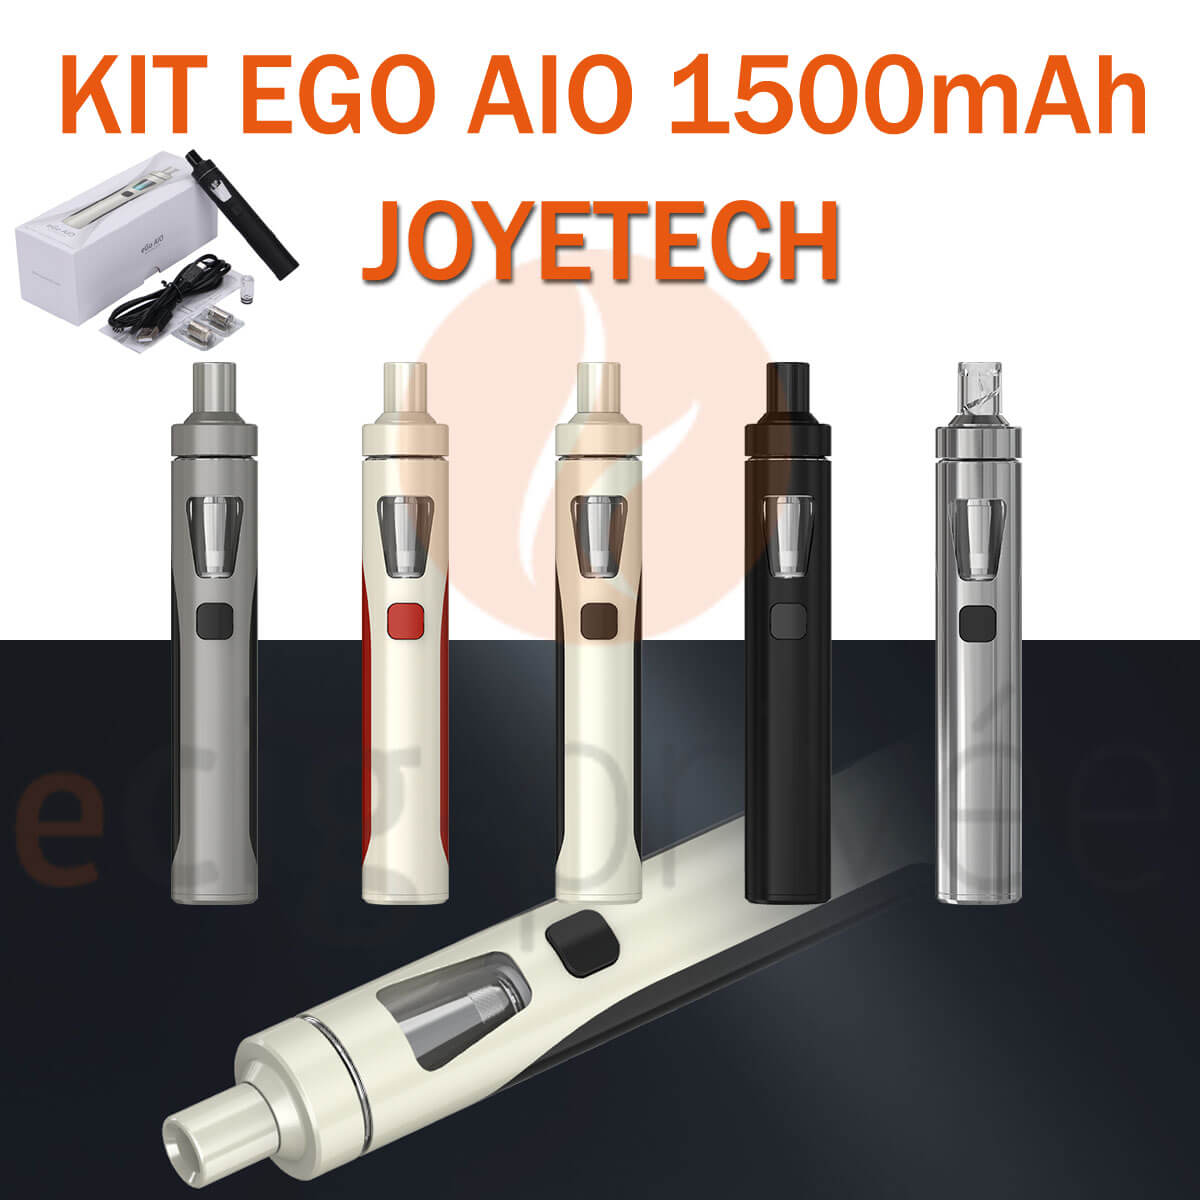 le manuel du kit ego aio 1500mah de joyetech ecig priv e. Black Bedroom Furniture Sets. Home Design Ideas